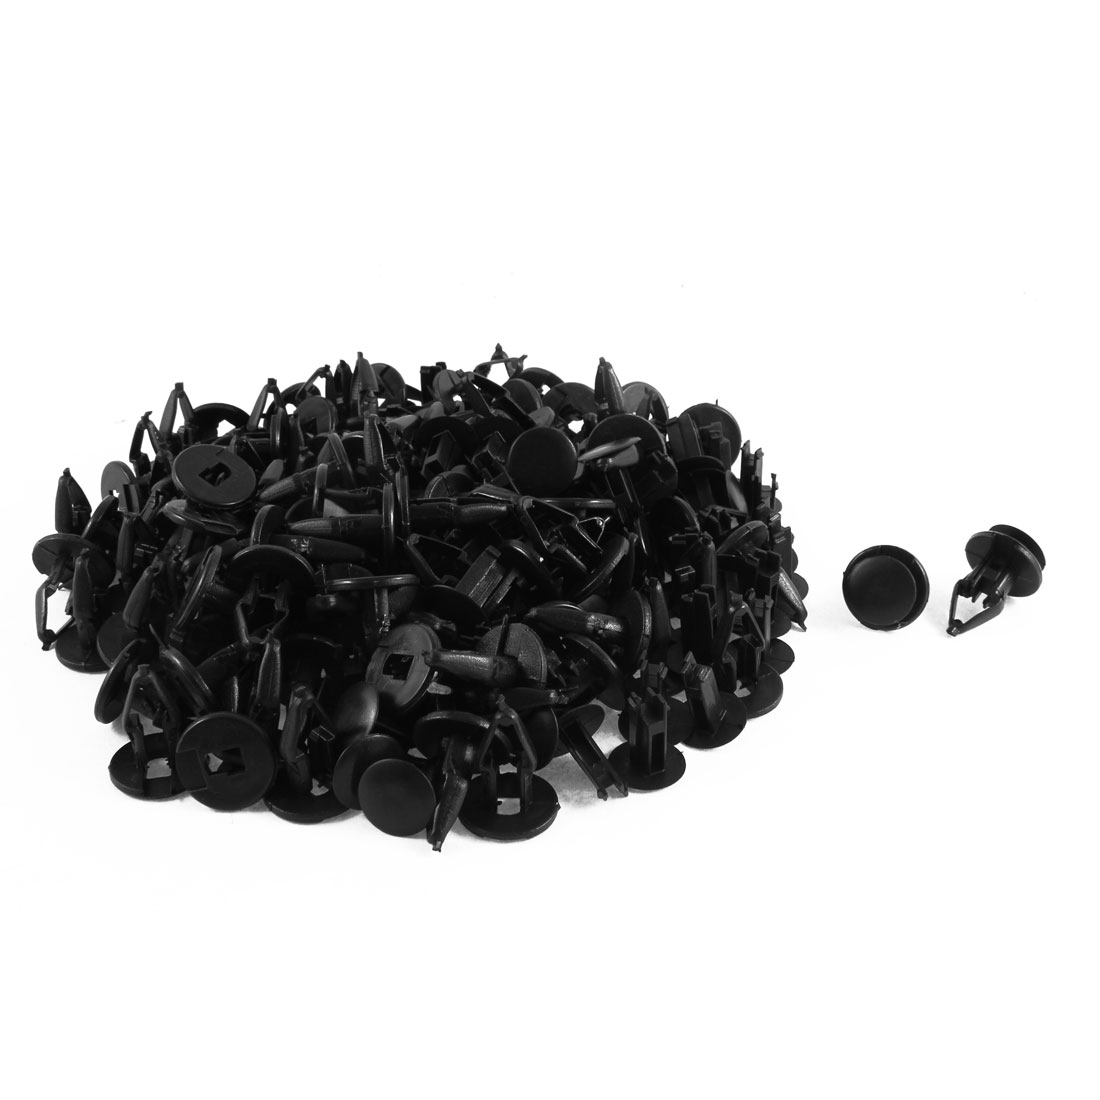 100 Pcs Black Plastic Splash Guard Moulding Bumper Clips 12mm x 19mm x 23mm